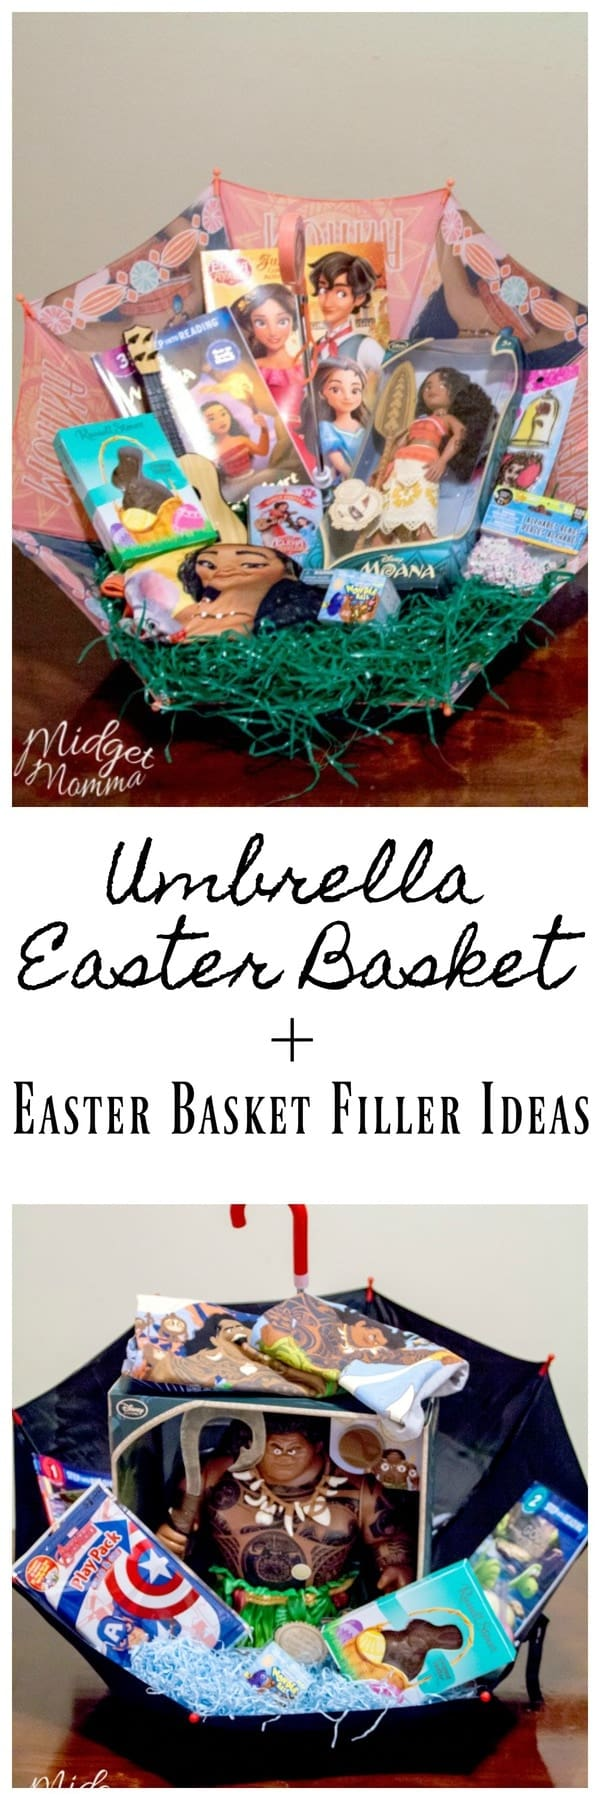 Umbrella Easter Basket & Easter Basket Ideas For Kids